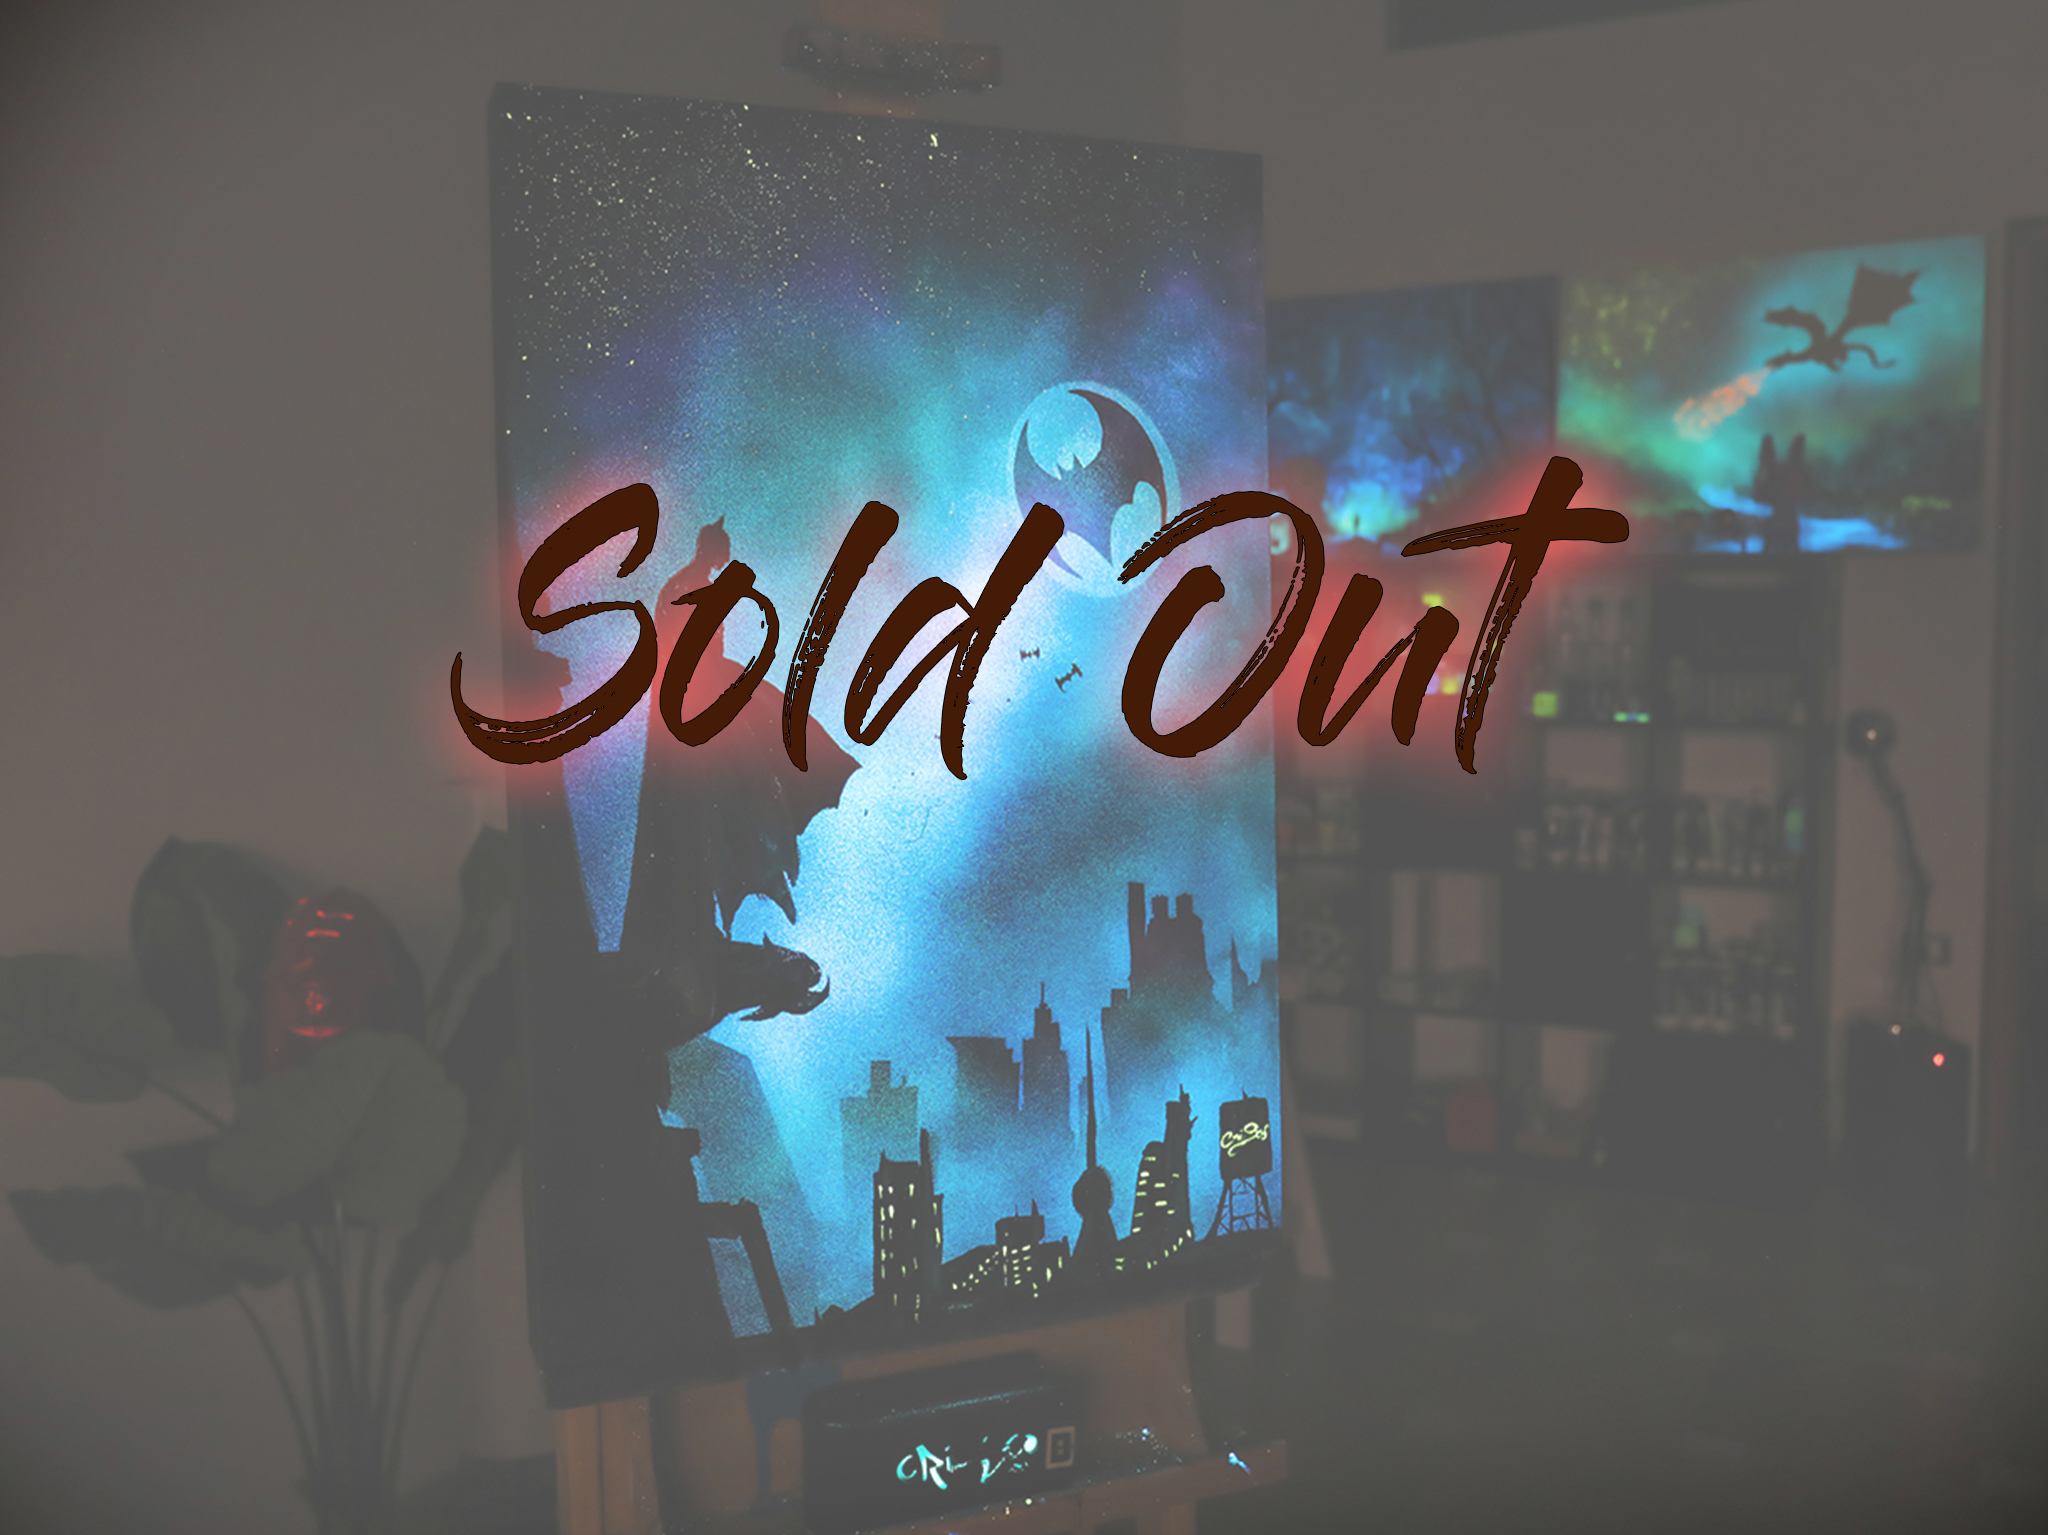 sold out filebat